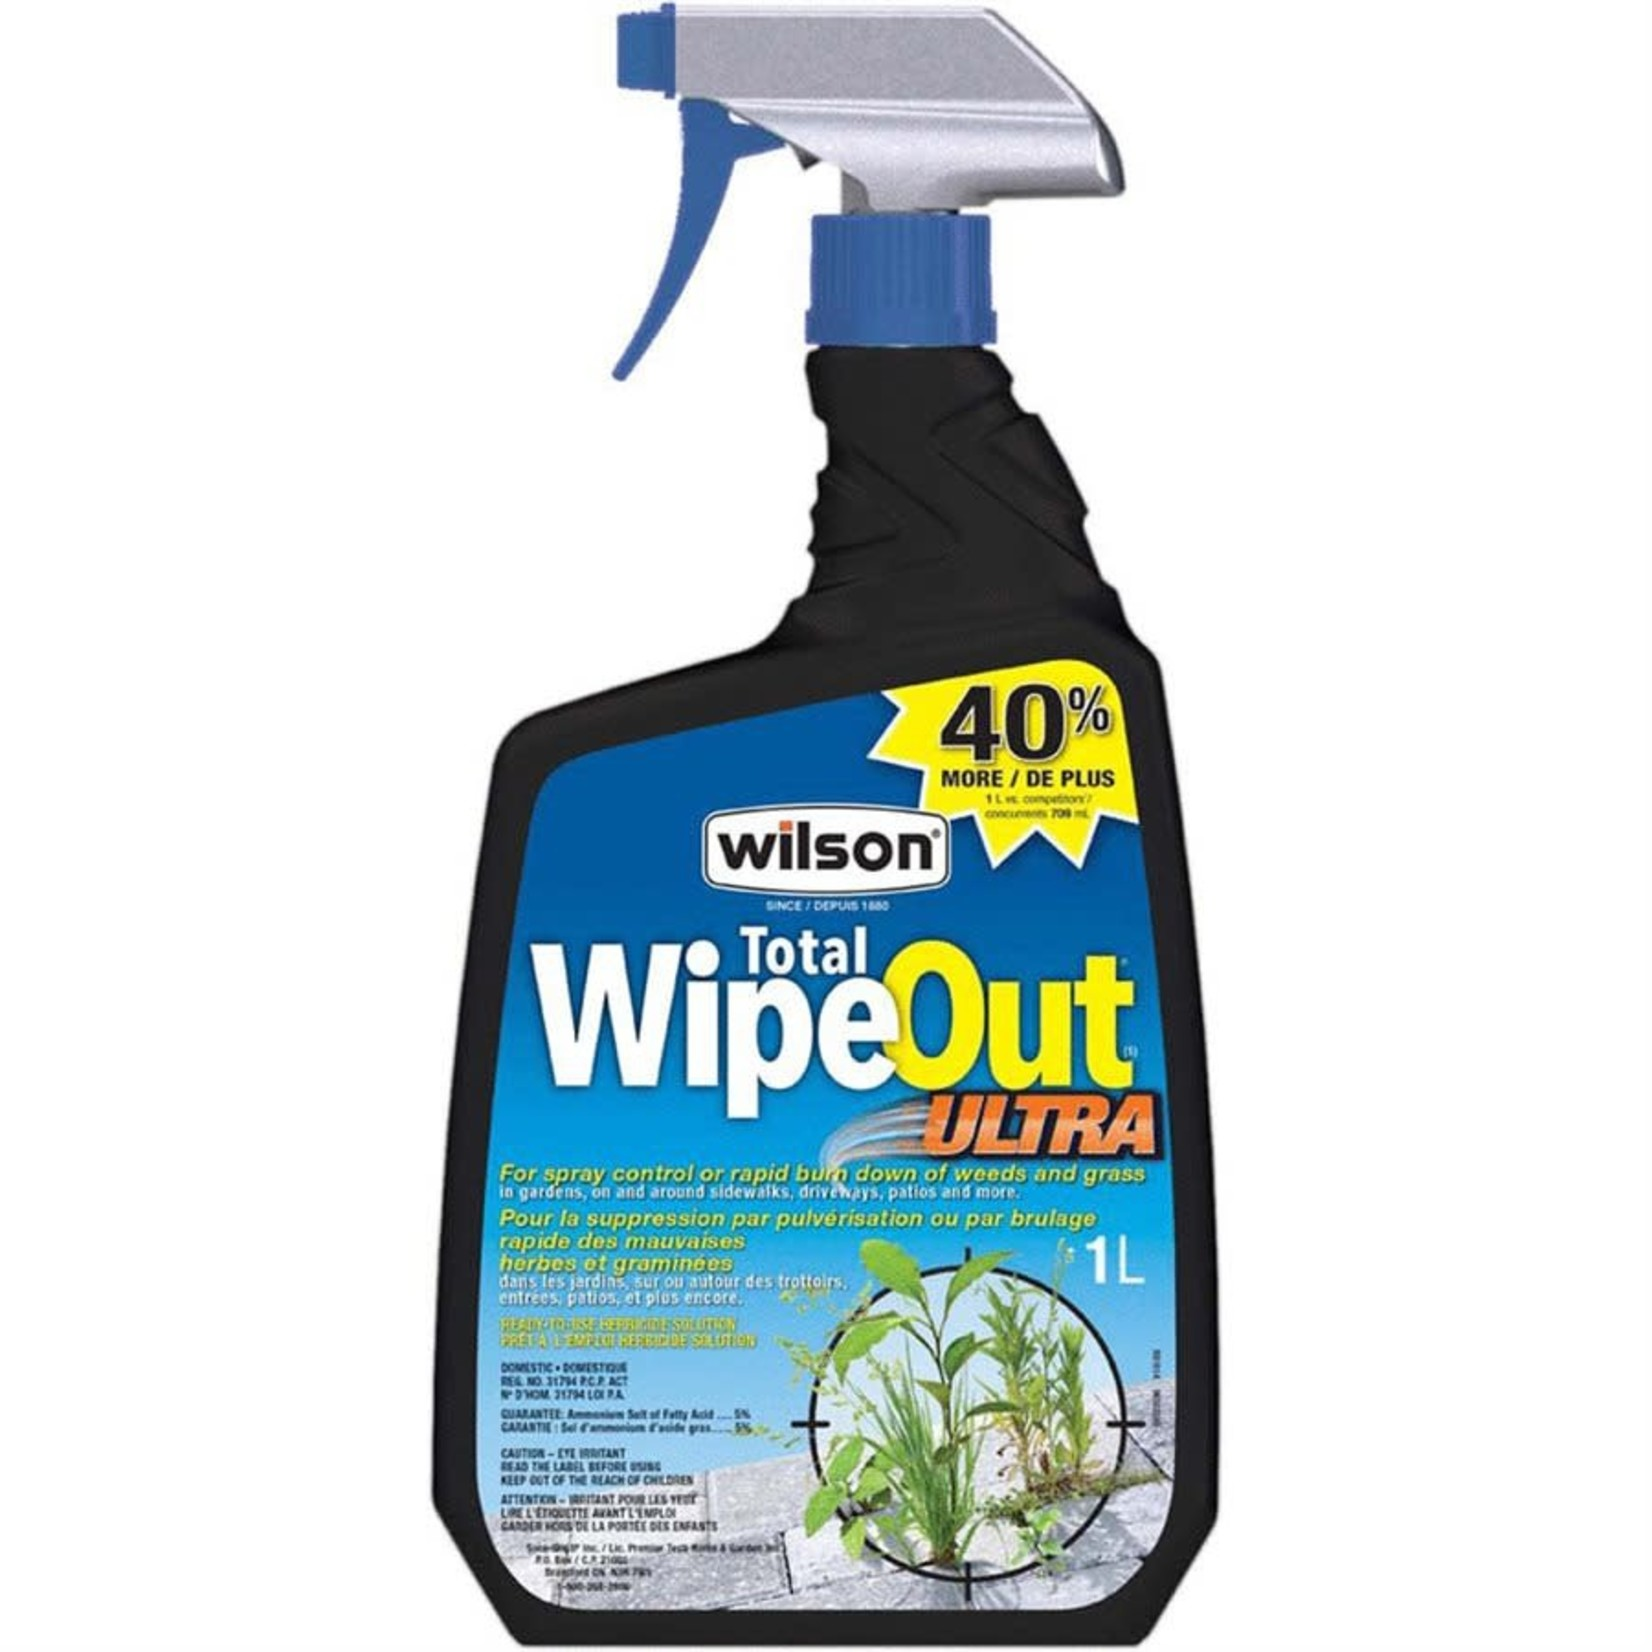 Wilson Total Wipe Out Ultra Weed and Grass Killer 1L